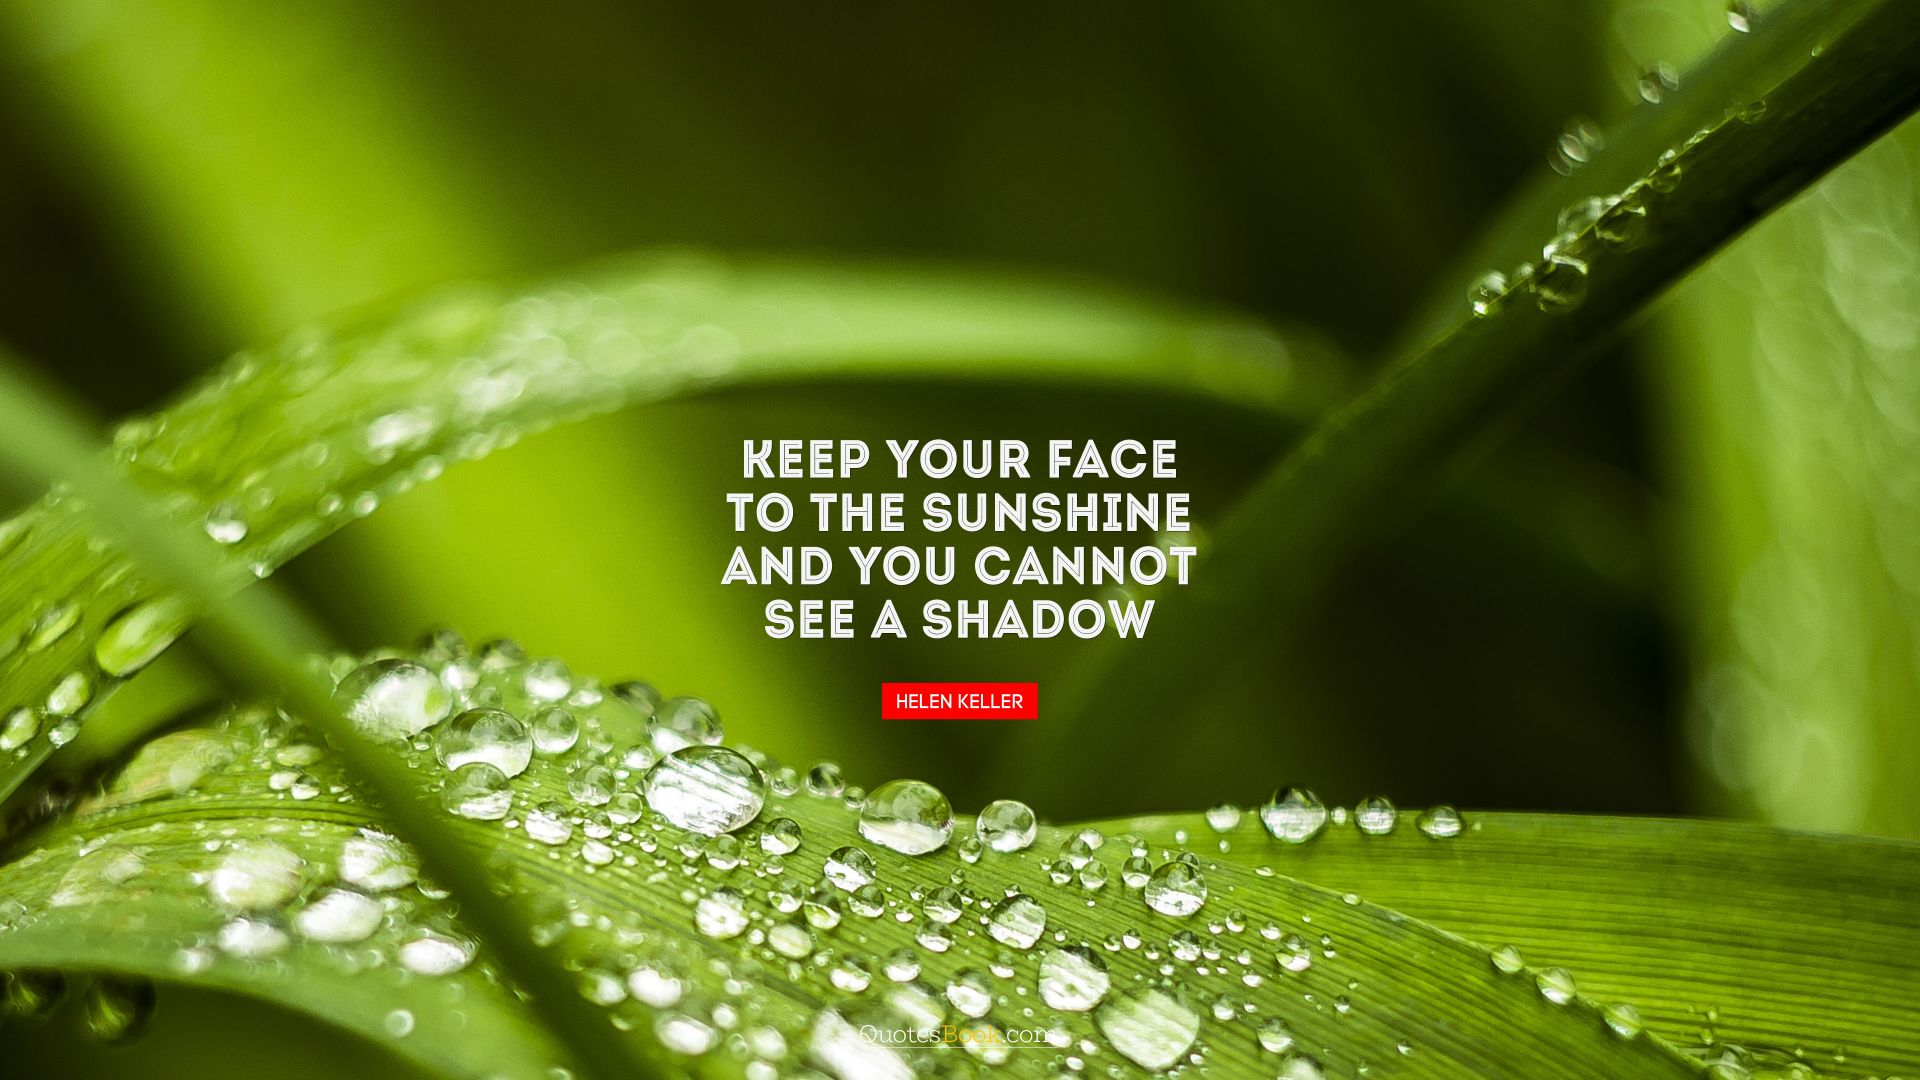 Keep your face to the sunshine and you cannot see a shadow. - Quote by Helen Keller